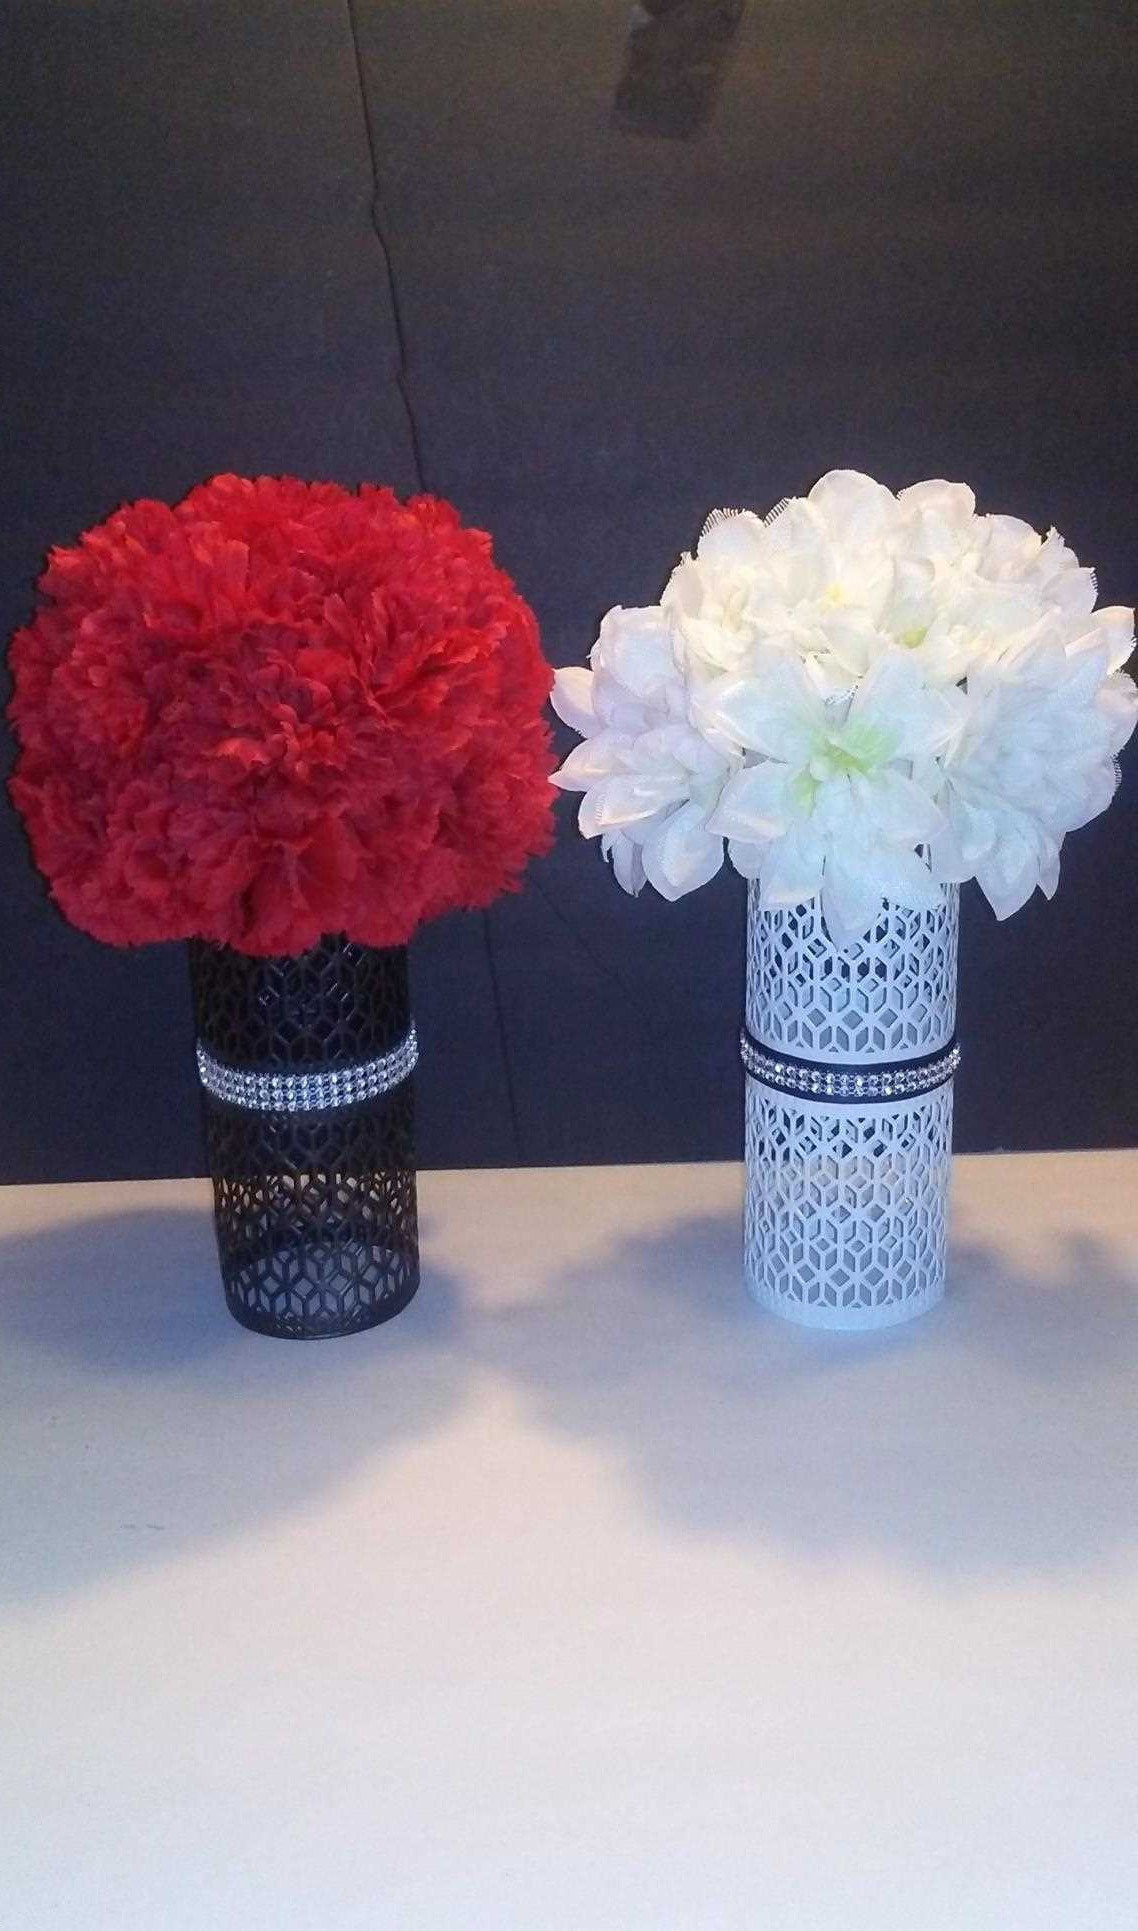 Dollar Store Bud Vases Of Dollar Tree Vases Wedding Photos Flowers Centerpieces for Wedding with Dollar Tree Vases Wedding Photos Flowers Centerpieces for Wedding Best Dollar Tree Wedding